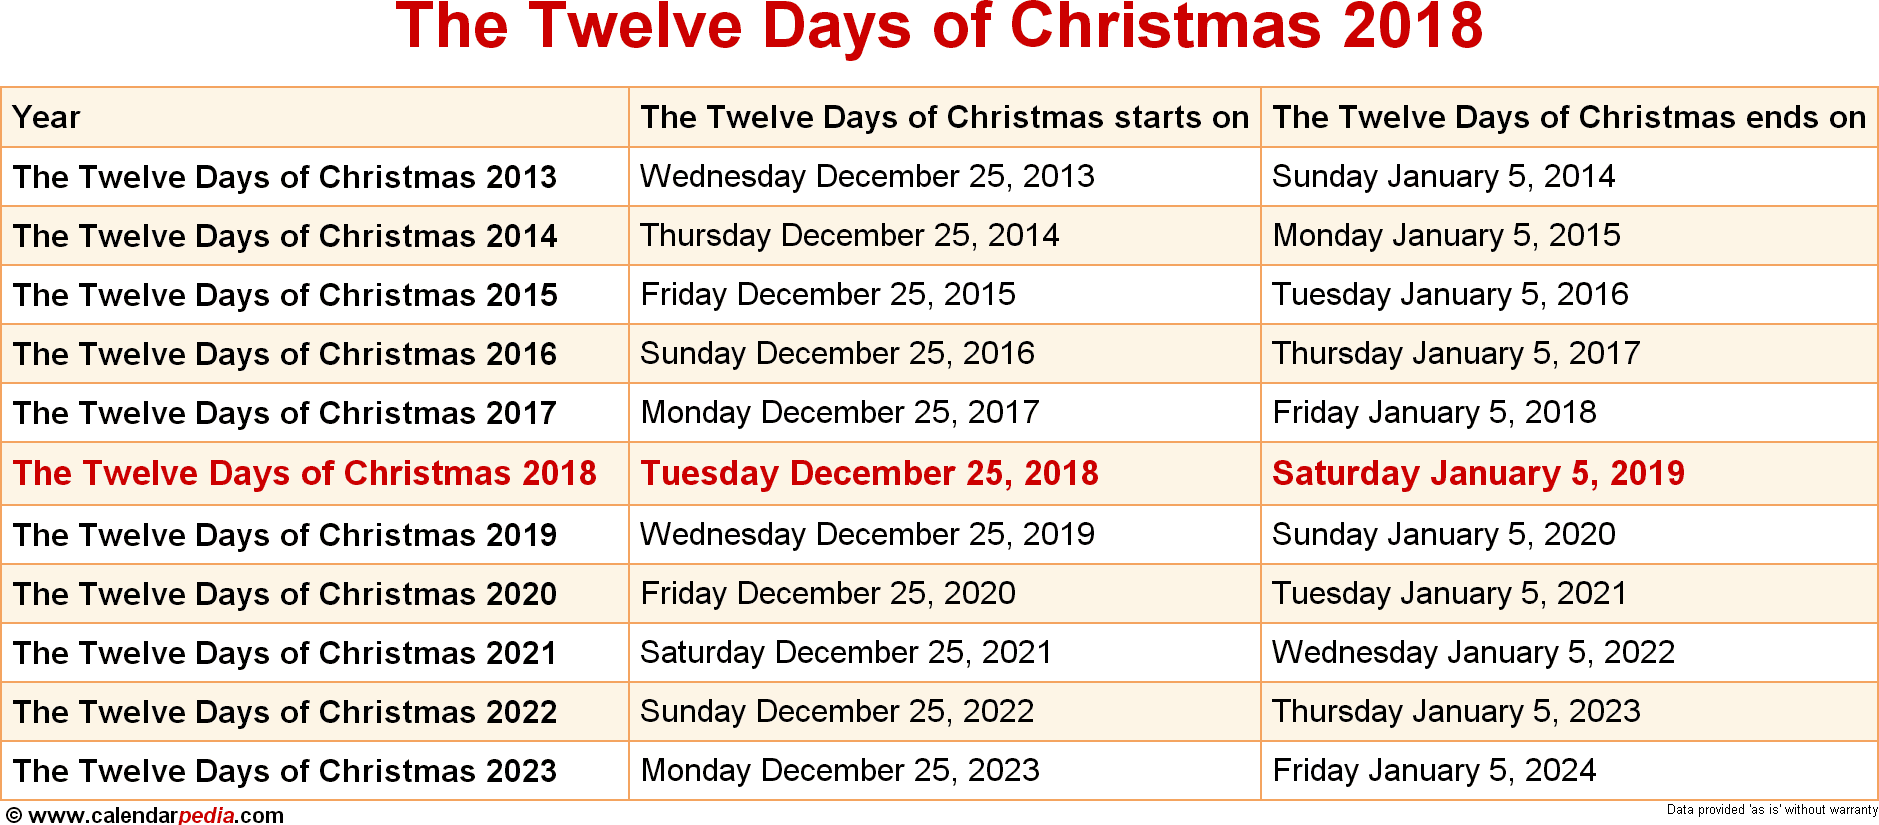 dates for the twelve days of christmas from 2013 to 2023 - Whens Christmas